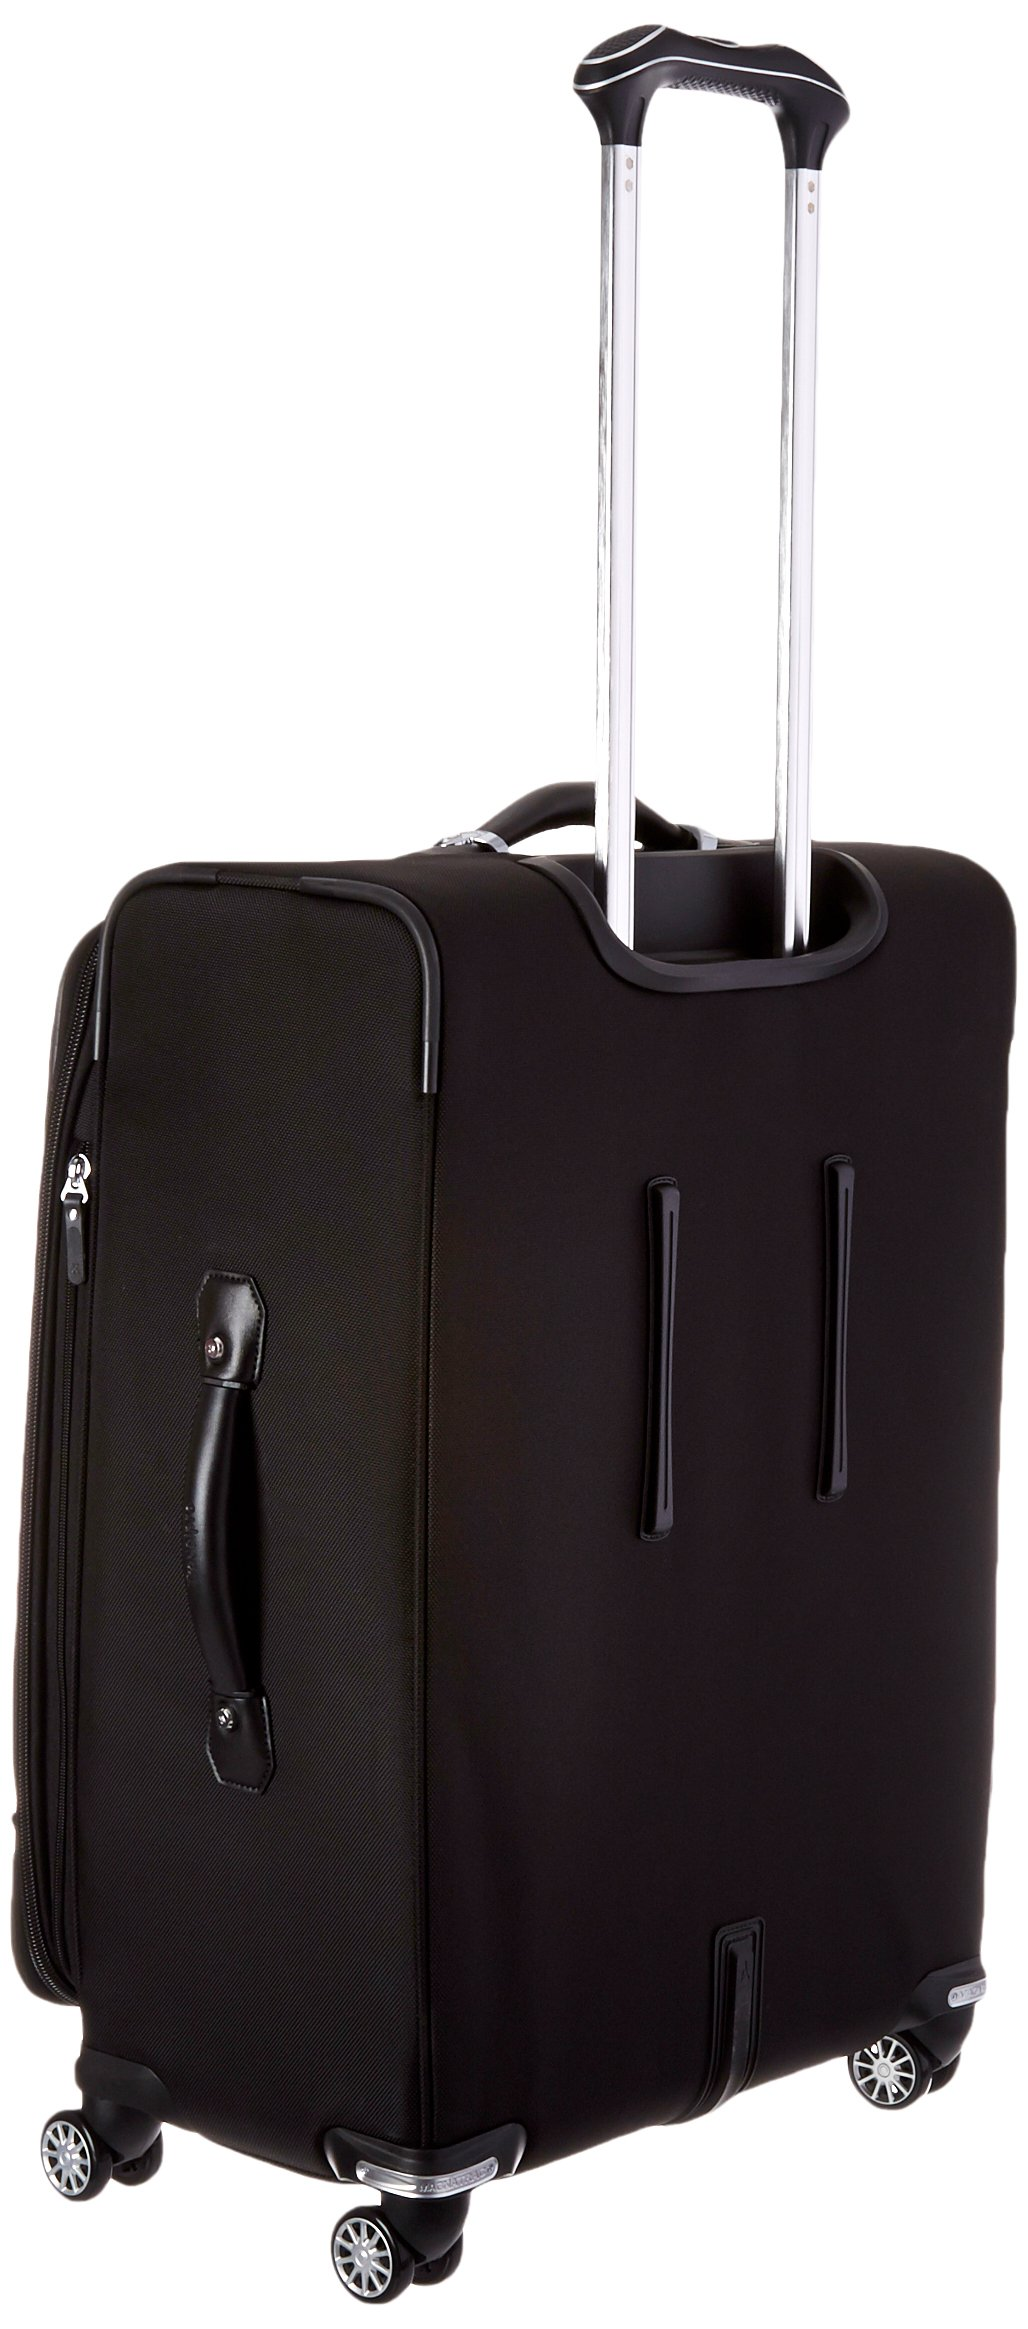 Galleon Travelpro Platinum Magna 2 Expandable Spinner